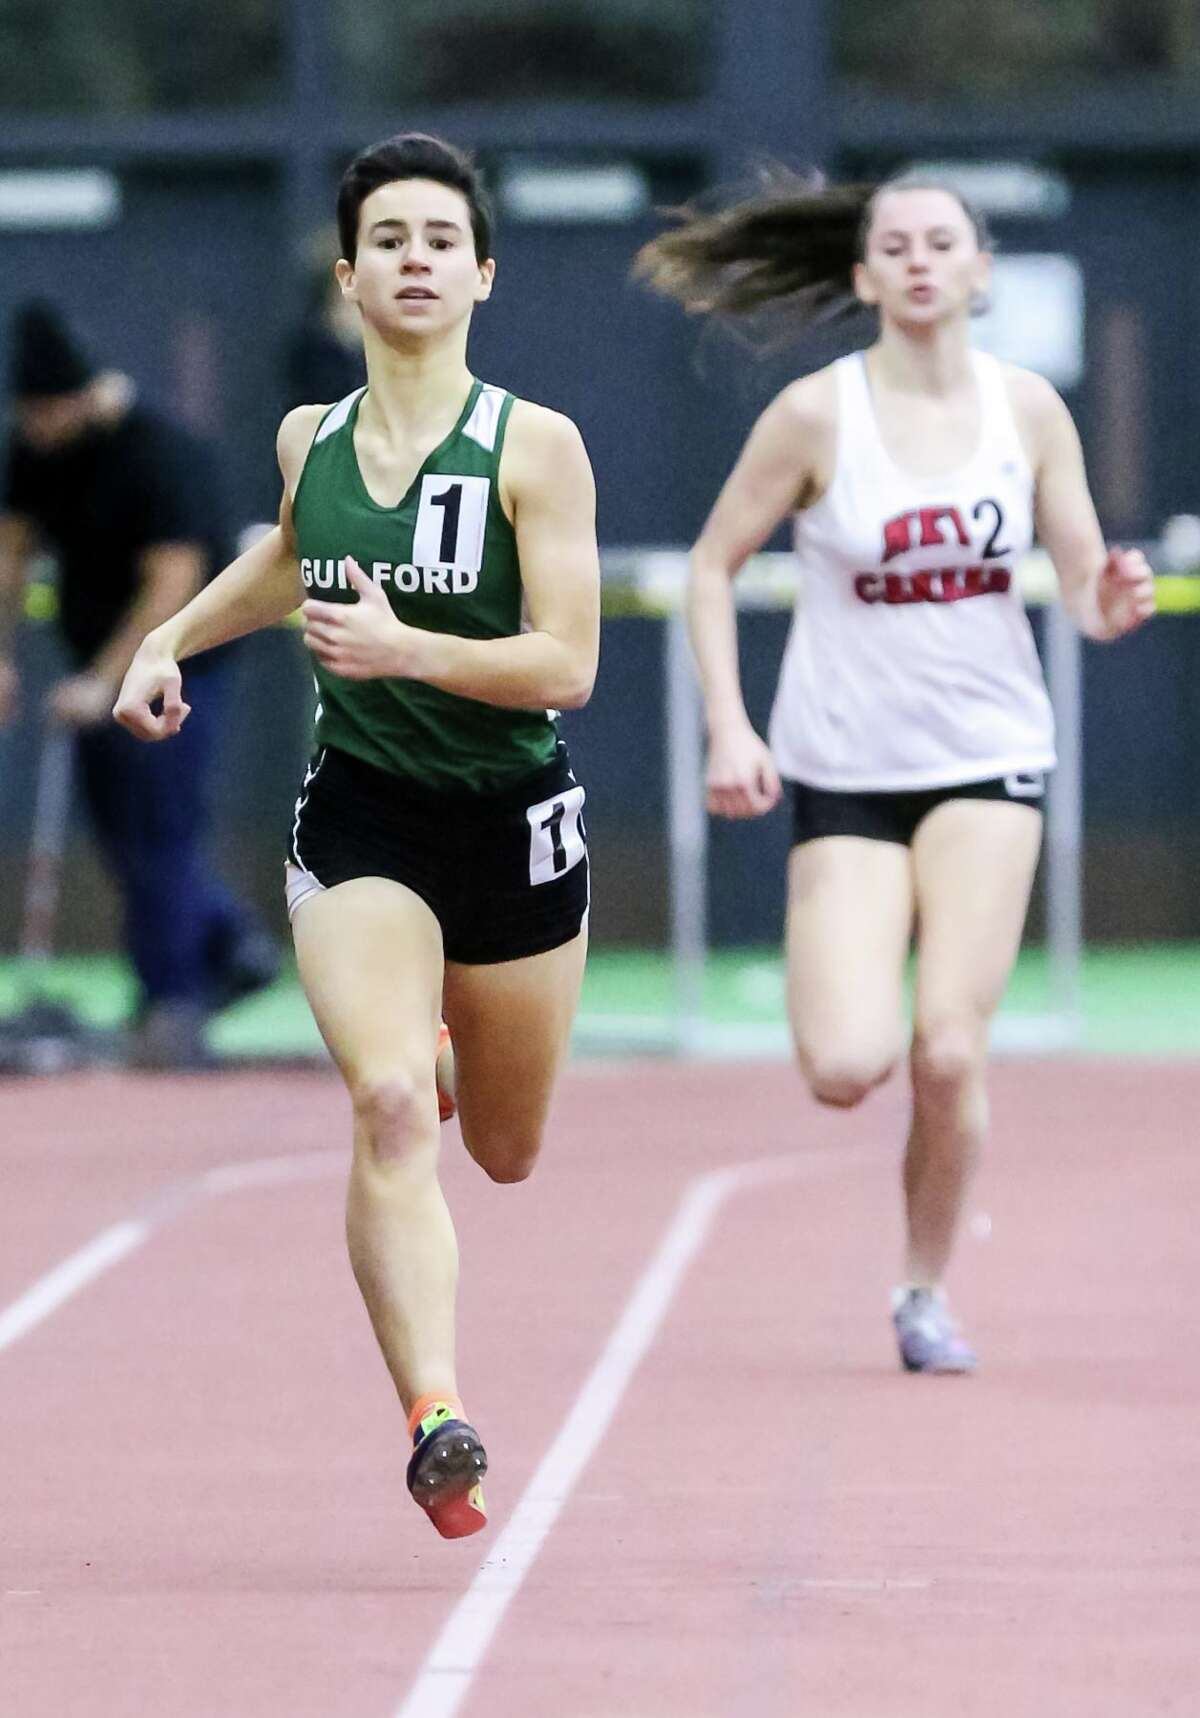 Guilford's Jaqueline Guerra leads New Canaan's Julia Ozimek and runs to capture the CIAC Class L title in the 1000 Meter run Thursday, February 8, 2018.